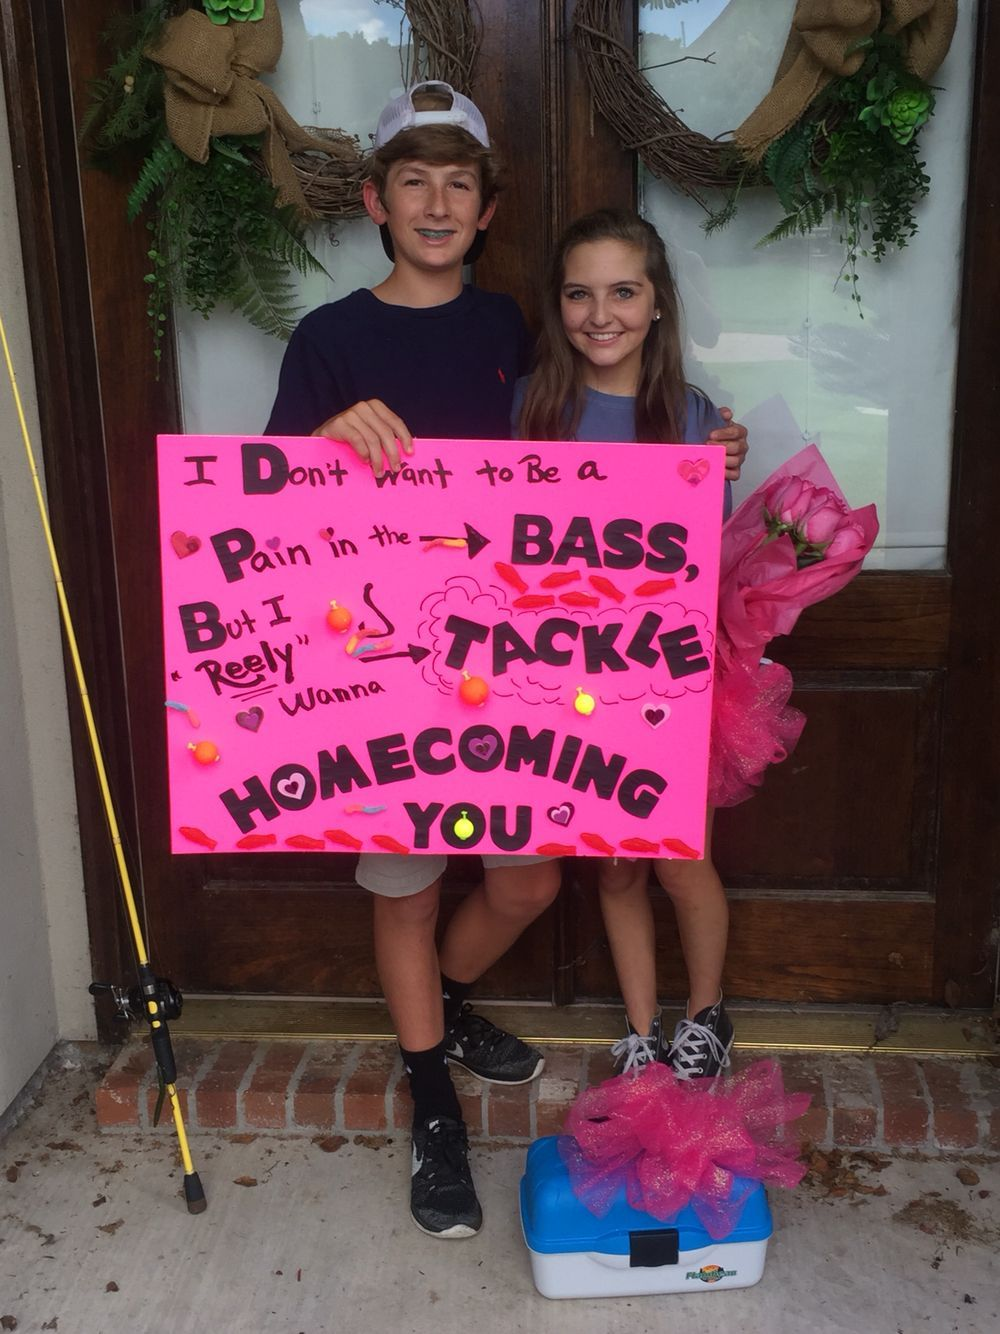 Homecoming Fishing Promgoals Cute Prom Proposals Cute Homecoming Proposals Prom Posters